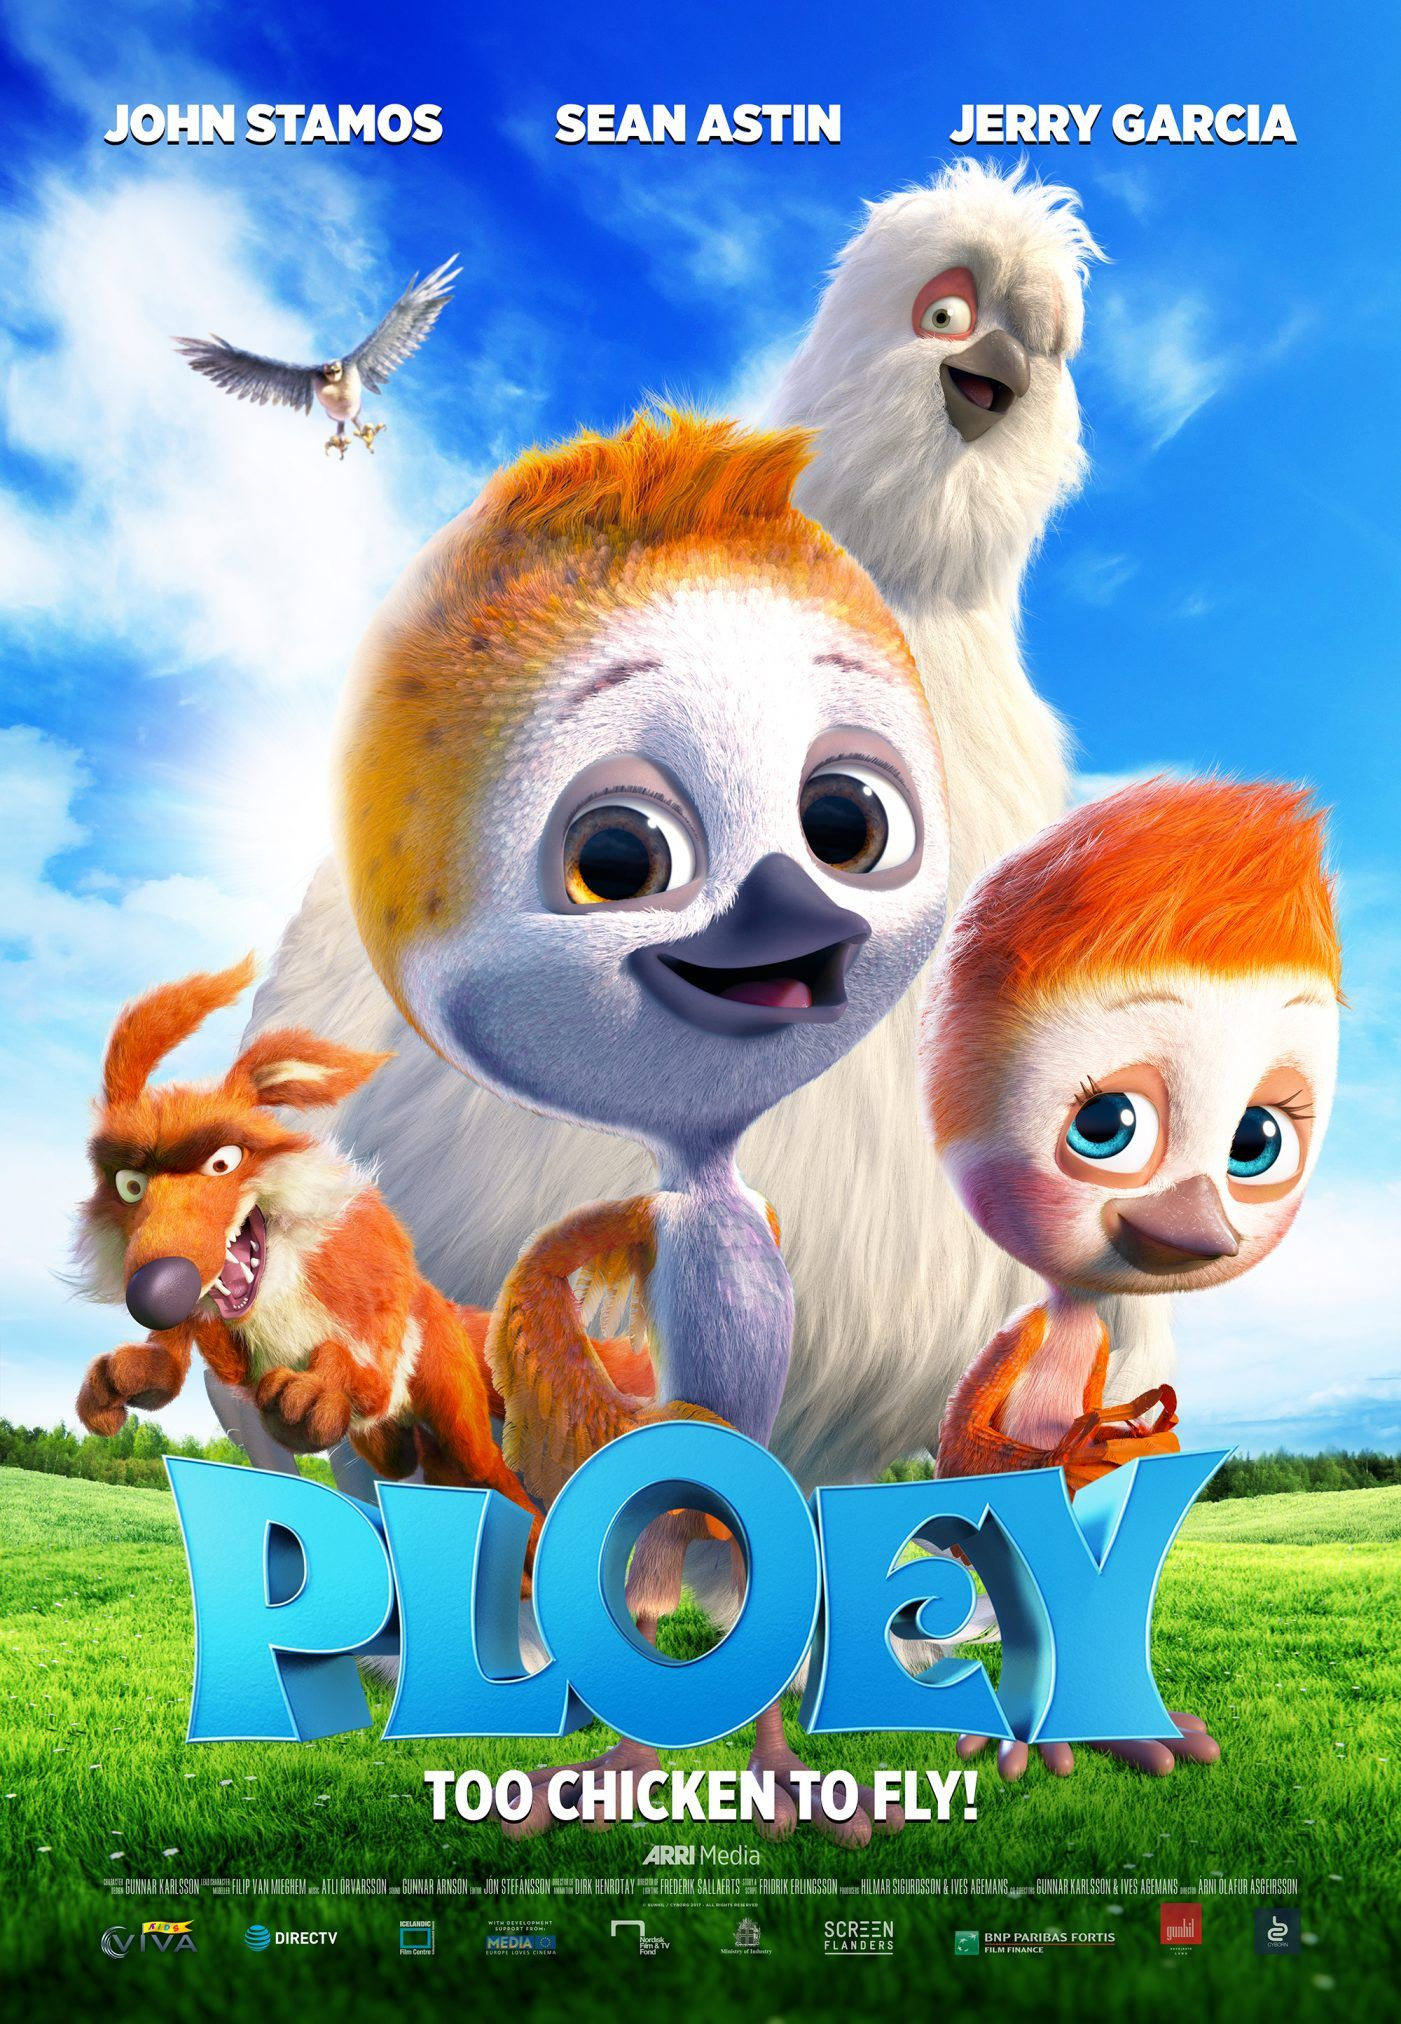 Win a PLOEY Prize Pack with 25 AMC GC! US only, ends 4/7